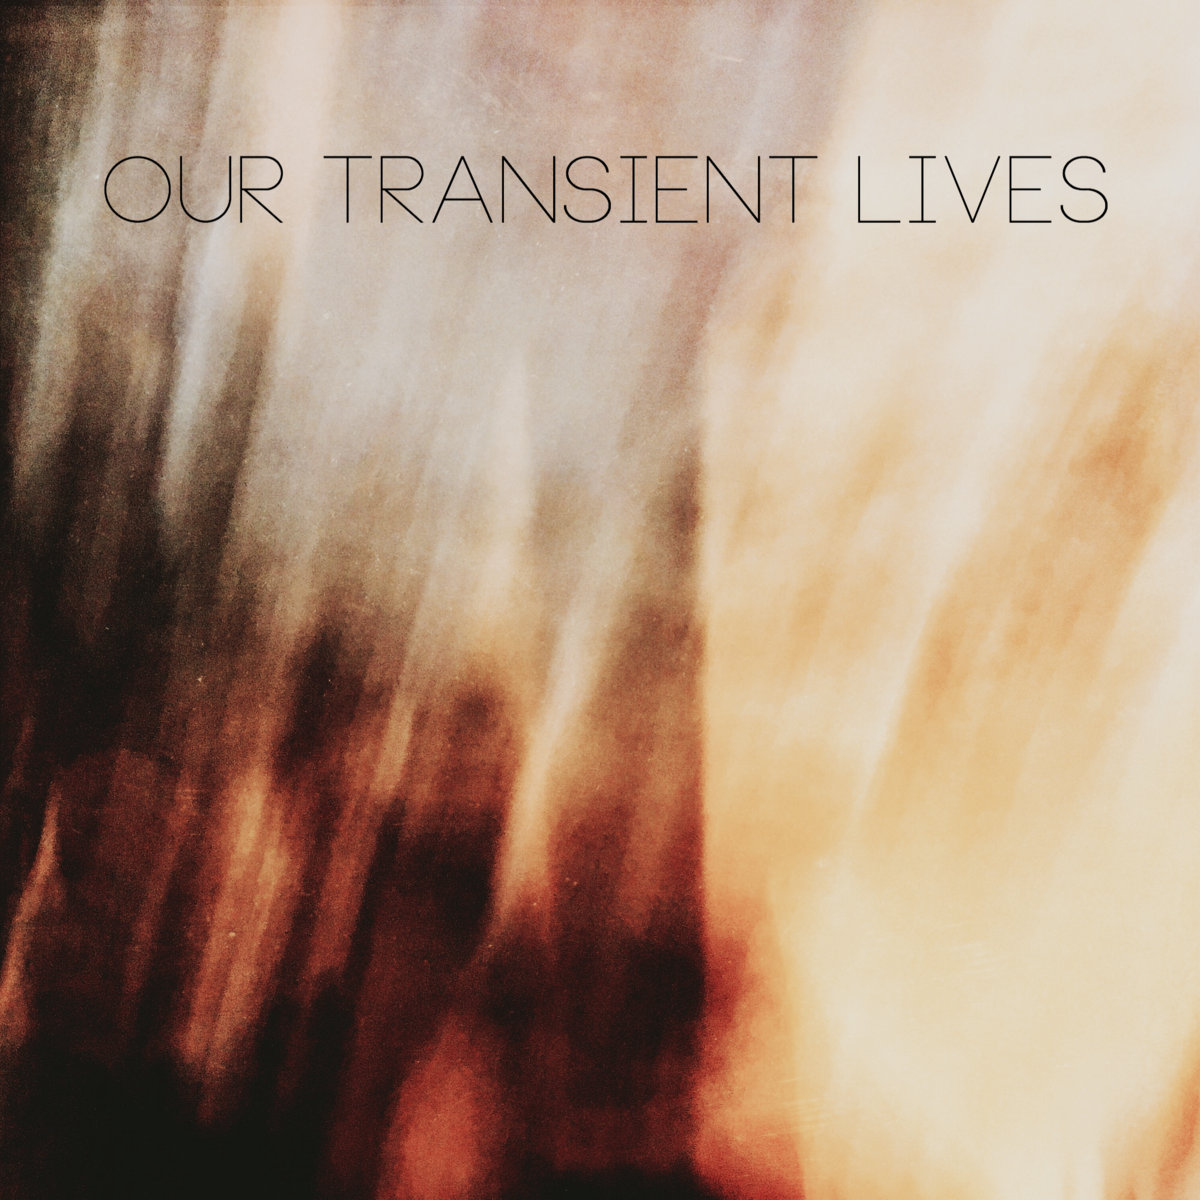 Our Transient Lives - Create Light / Form Darkness